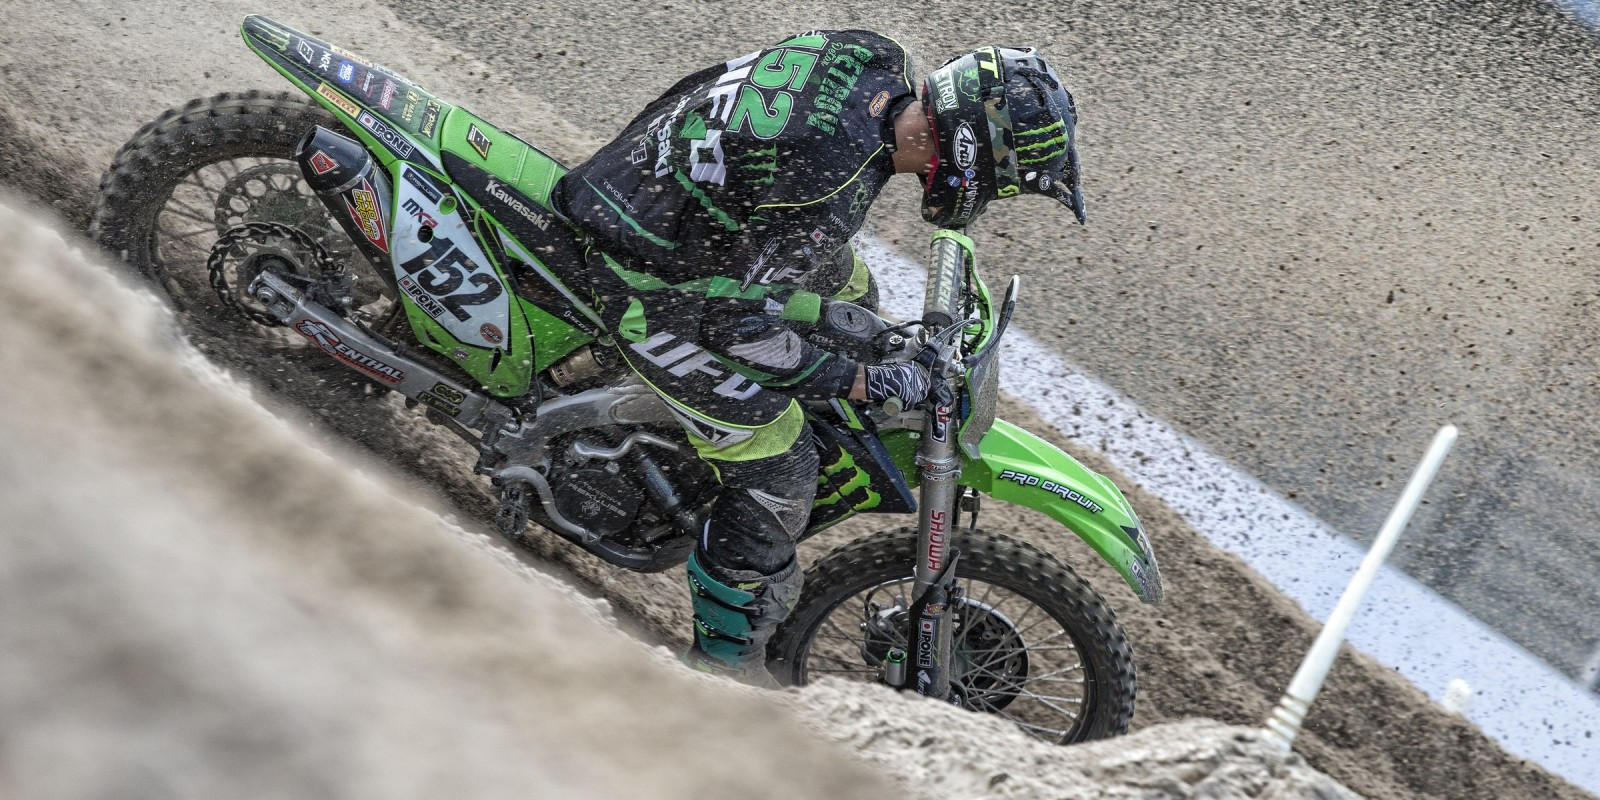 Petar Petrov at the 2016 MXGP of the Netherlands